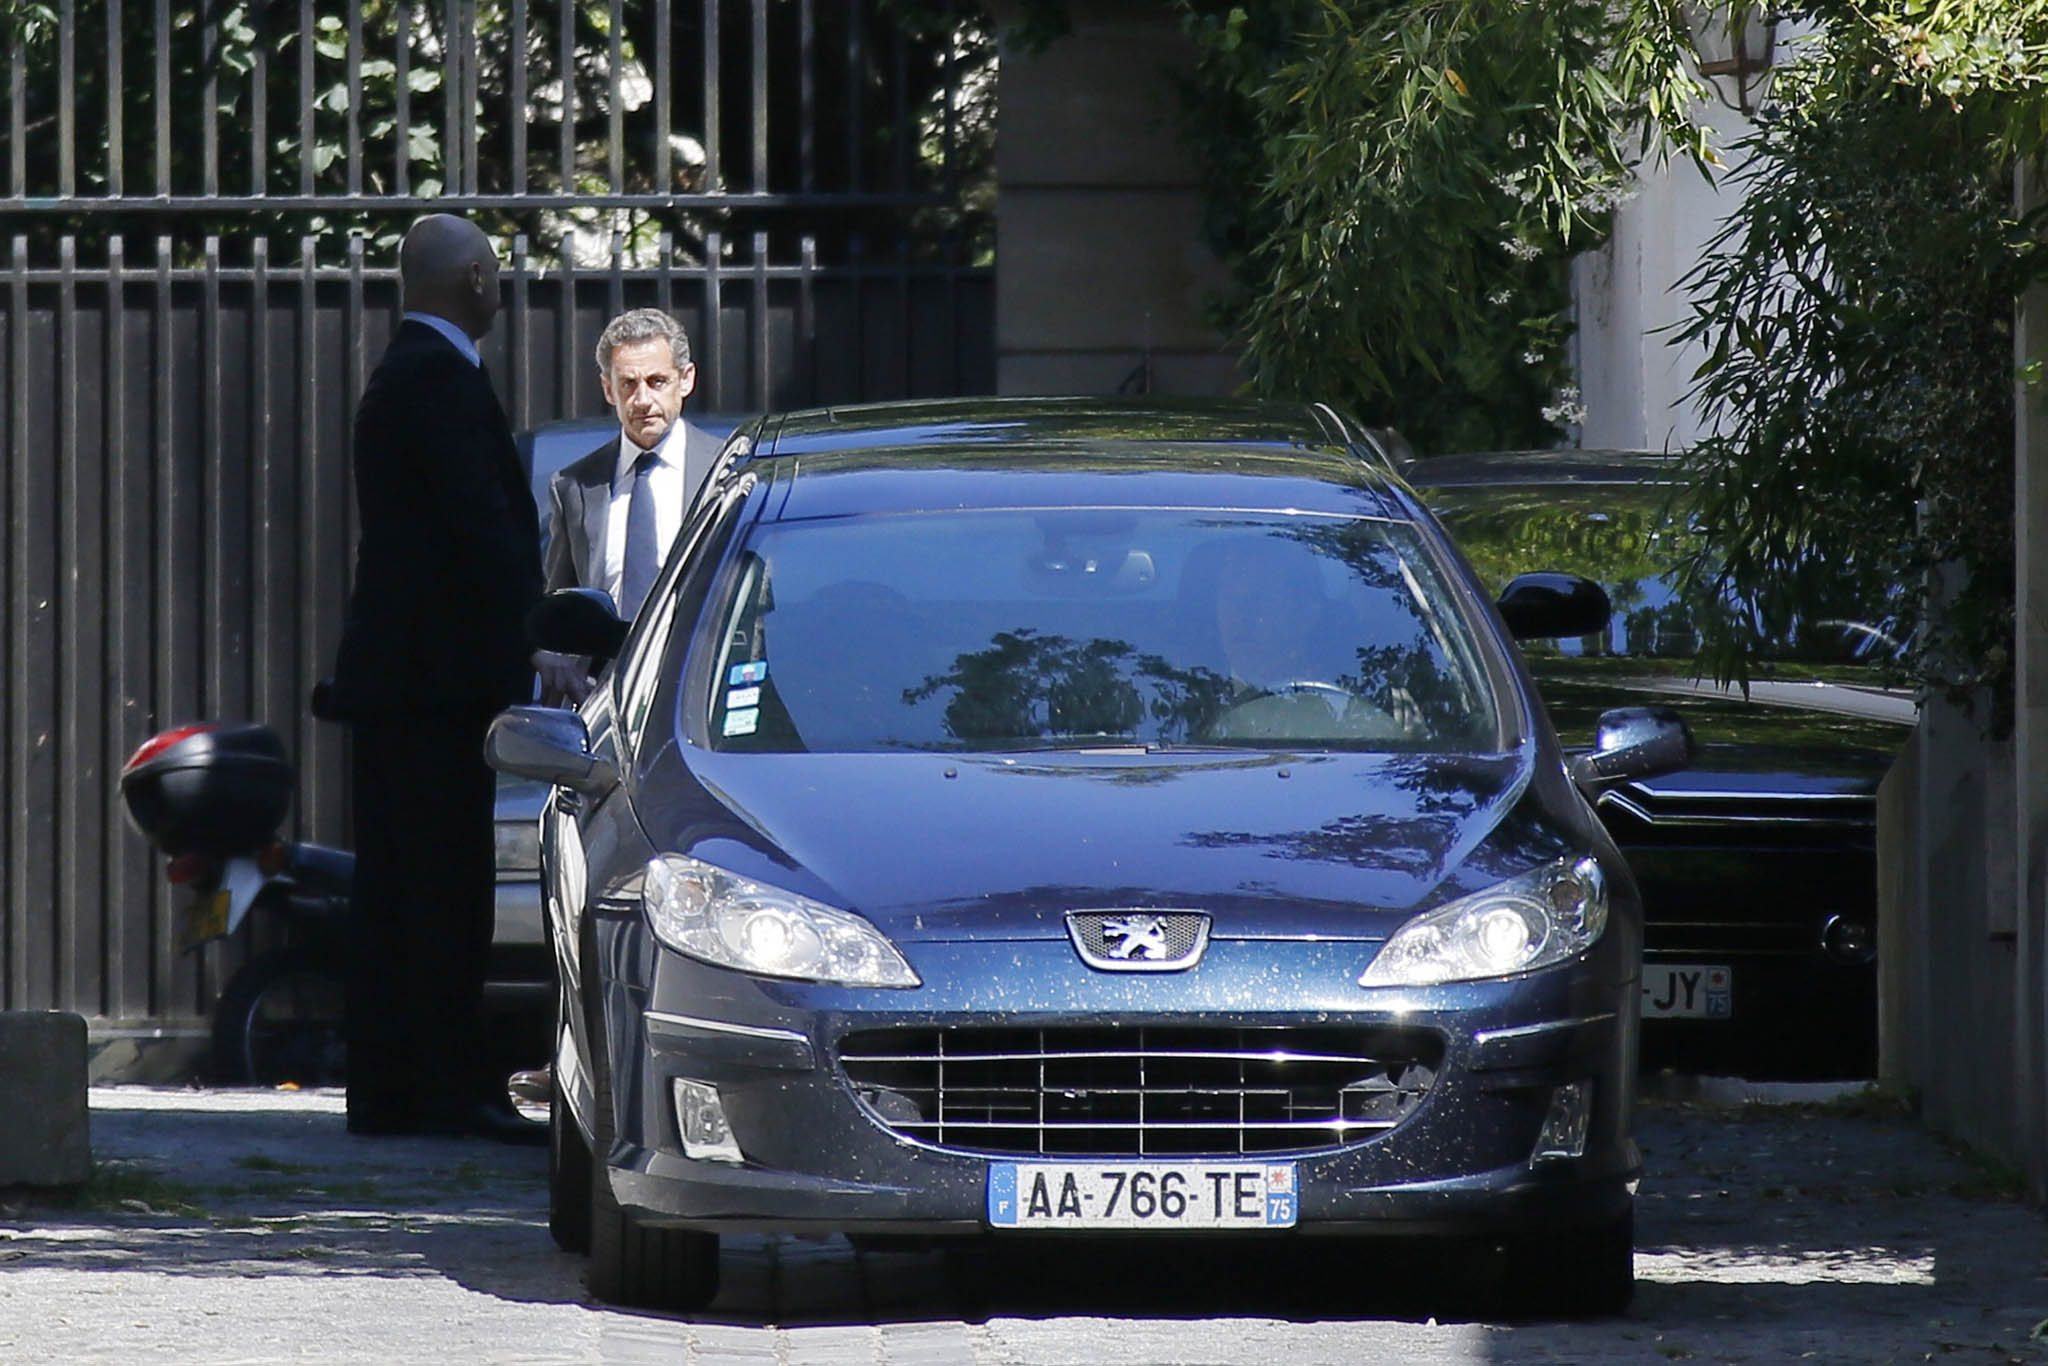 Former French President Nicolas Sarkozy leaves his residence in Paris...Former French President Nicolas Sarkozy (R) leaves his residence in Paris, July 2, 2014. Former French President Nicolas Sarkozy was placed under formal investigation on Wednesday on suspicions he tried to use his influence to thwart an investigation of his 2007 election campaign, the prosecutor's office said.   REUTERS/Gonzalo Fuentes (FRANCE - Tags: POLITICS CRIME LAW)    ATTENTION EDITORS FRENCH LAW REQUIRES THAT CAR REGISTRATION PLATES ARE MASKED IN PUBLICATIONS WITHIN FRANCE